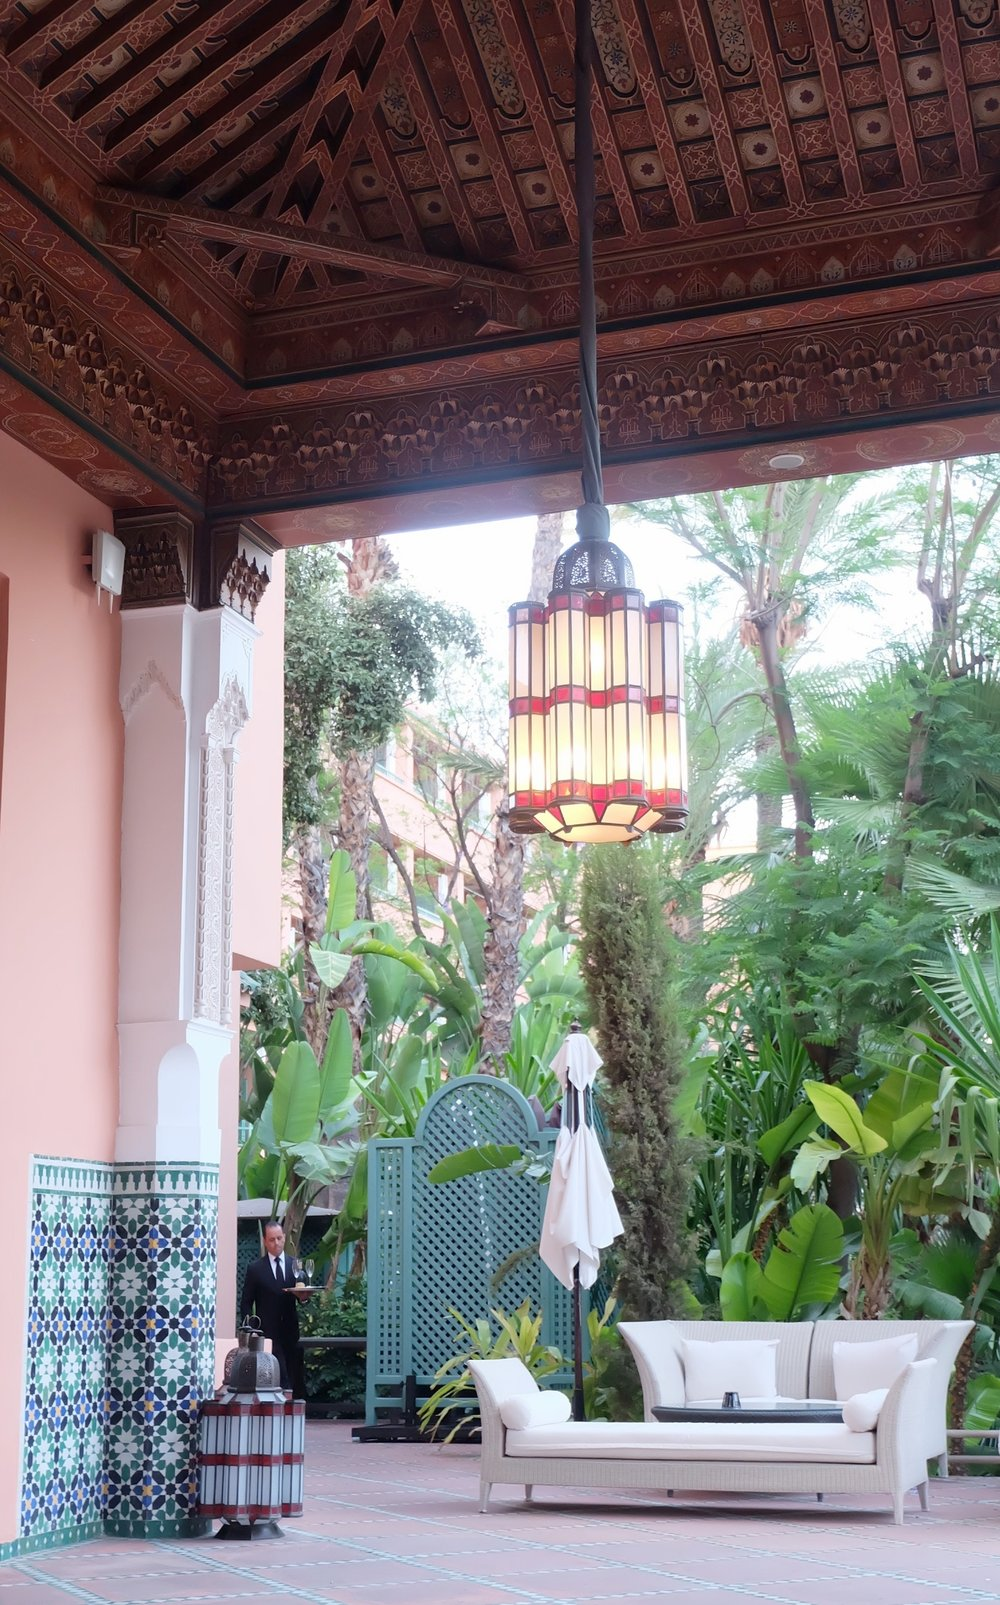 Interior inspo how to introduce moroccan style into your home decor